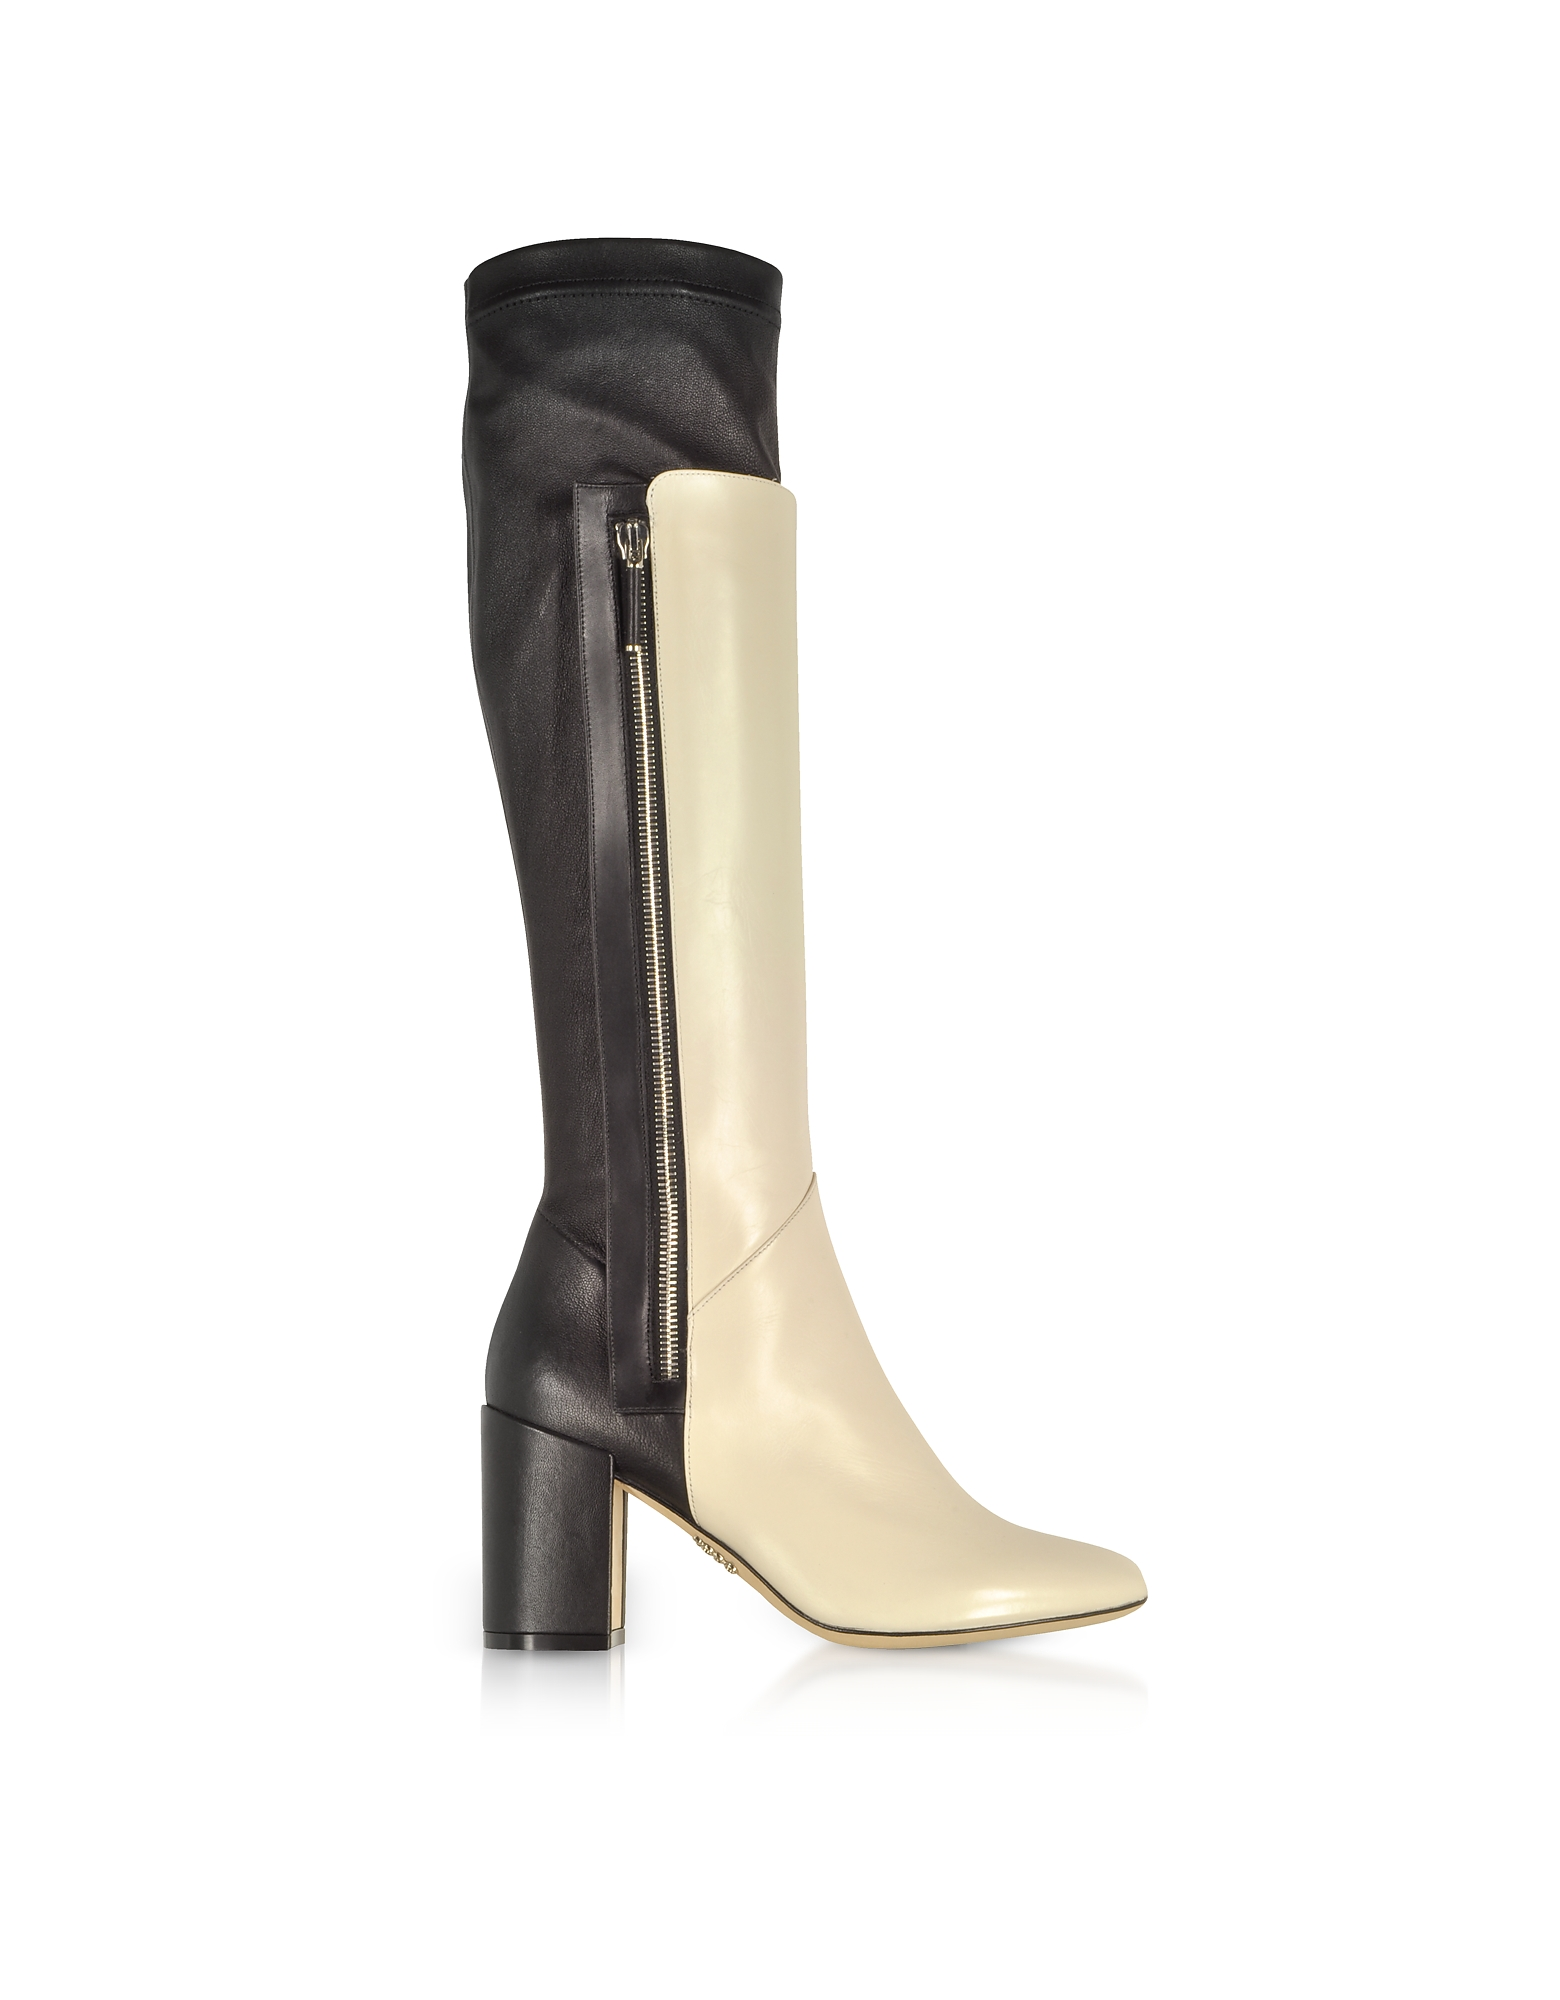 Rodo Shoes, Ivory and Black Leather Heel Over The Knee Boots